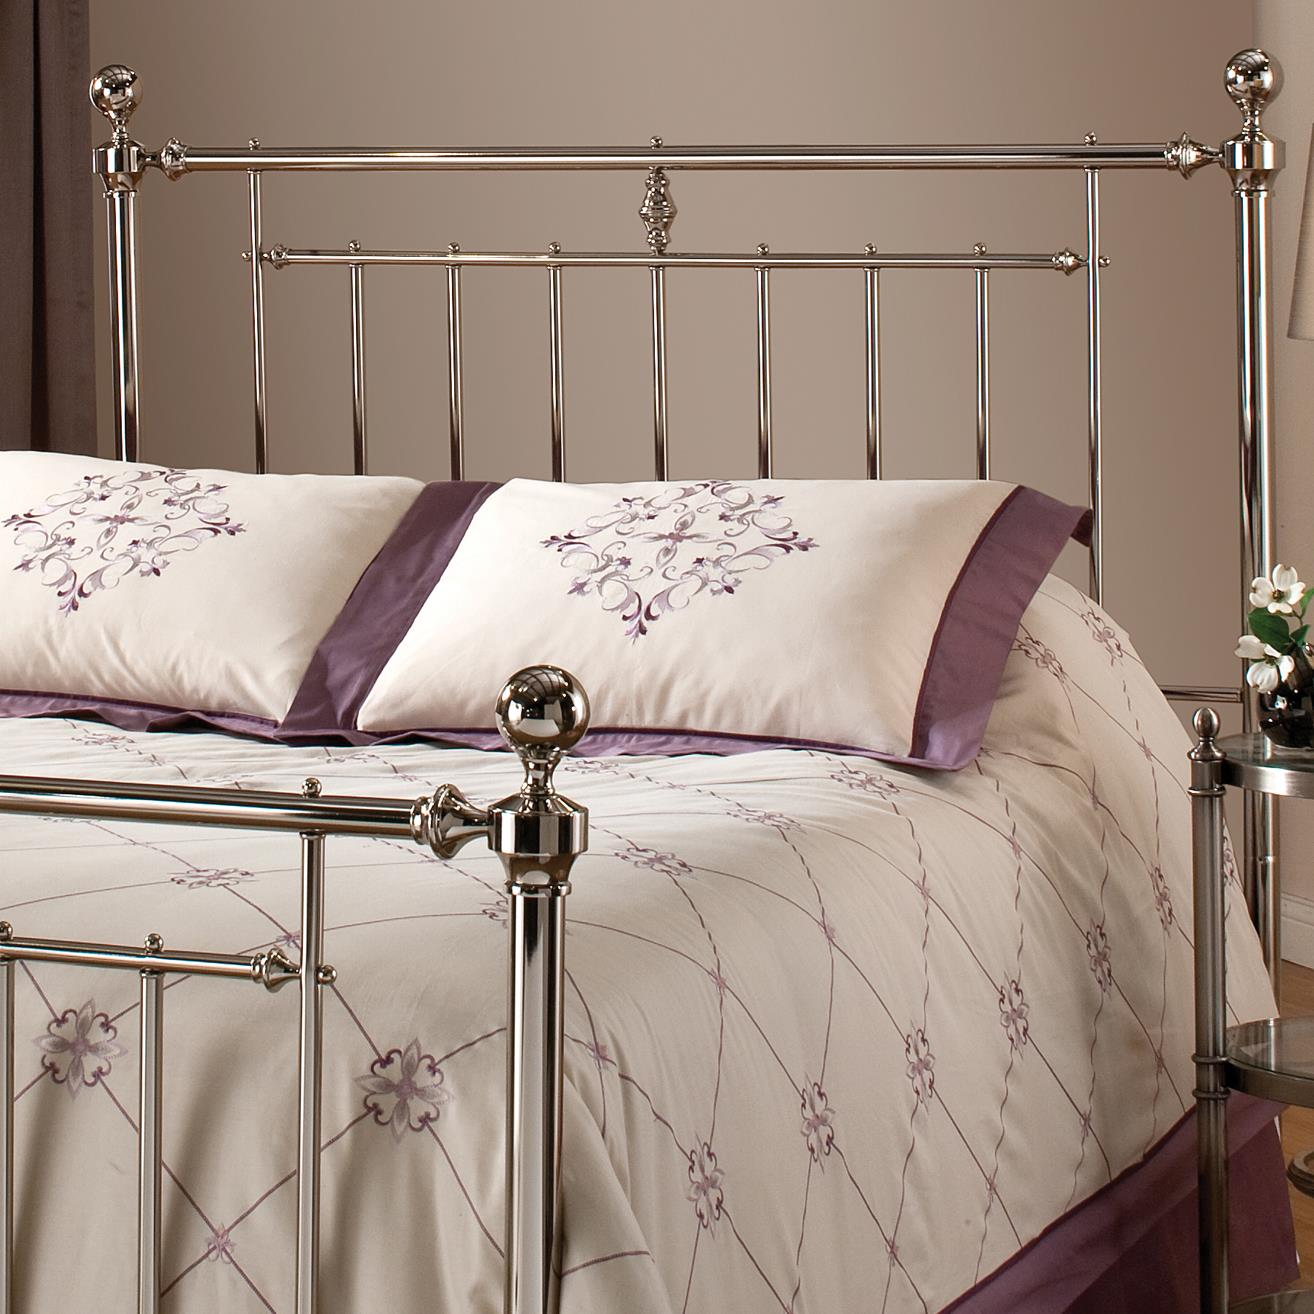 Hillsdale Metal Beds Holland Full/ Queen Headboard Without Rails - Item Number: 1251-490